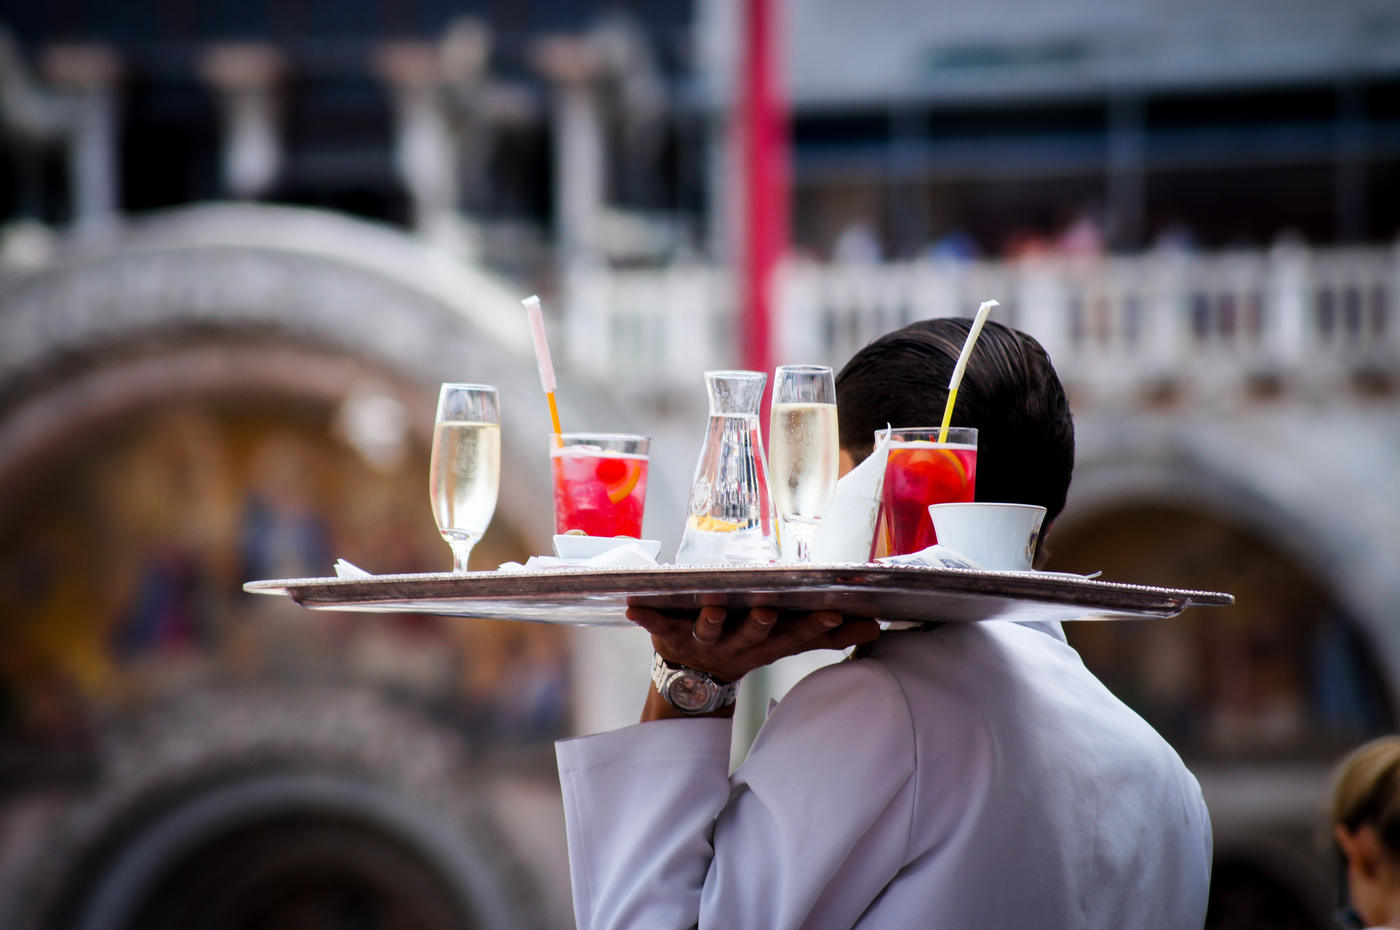 server bringing out drinks on a metal platter